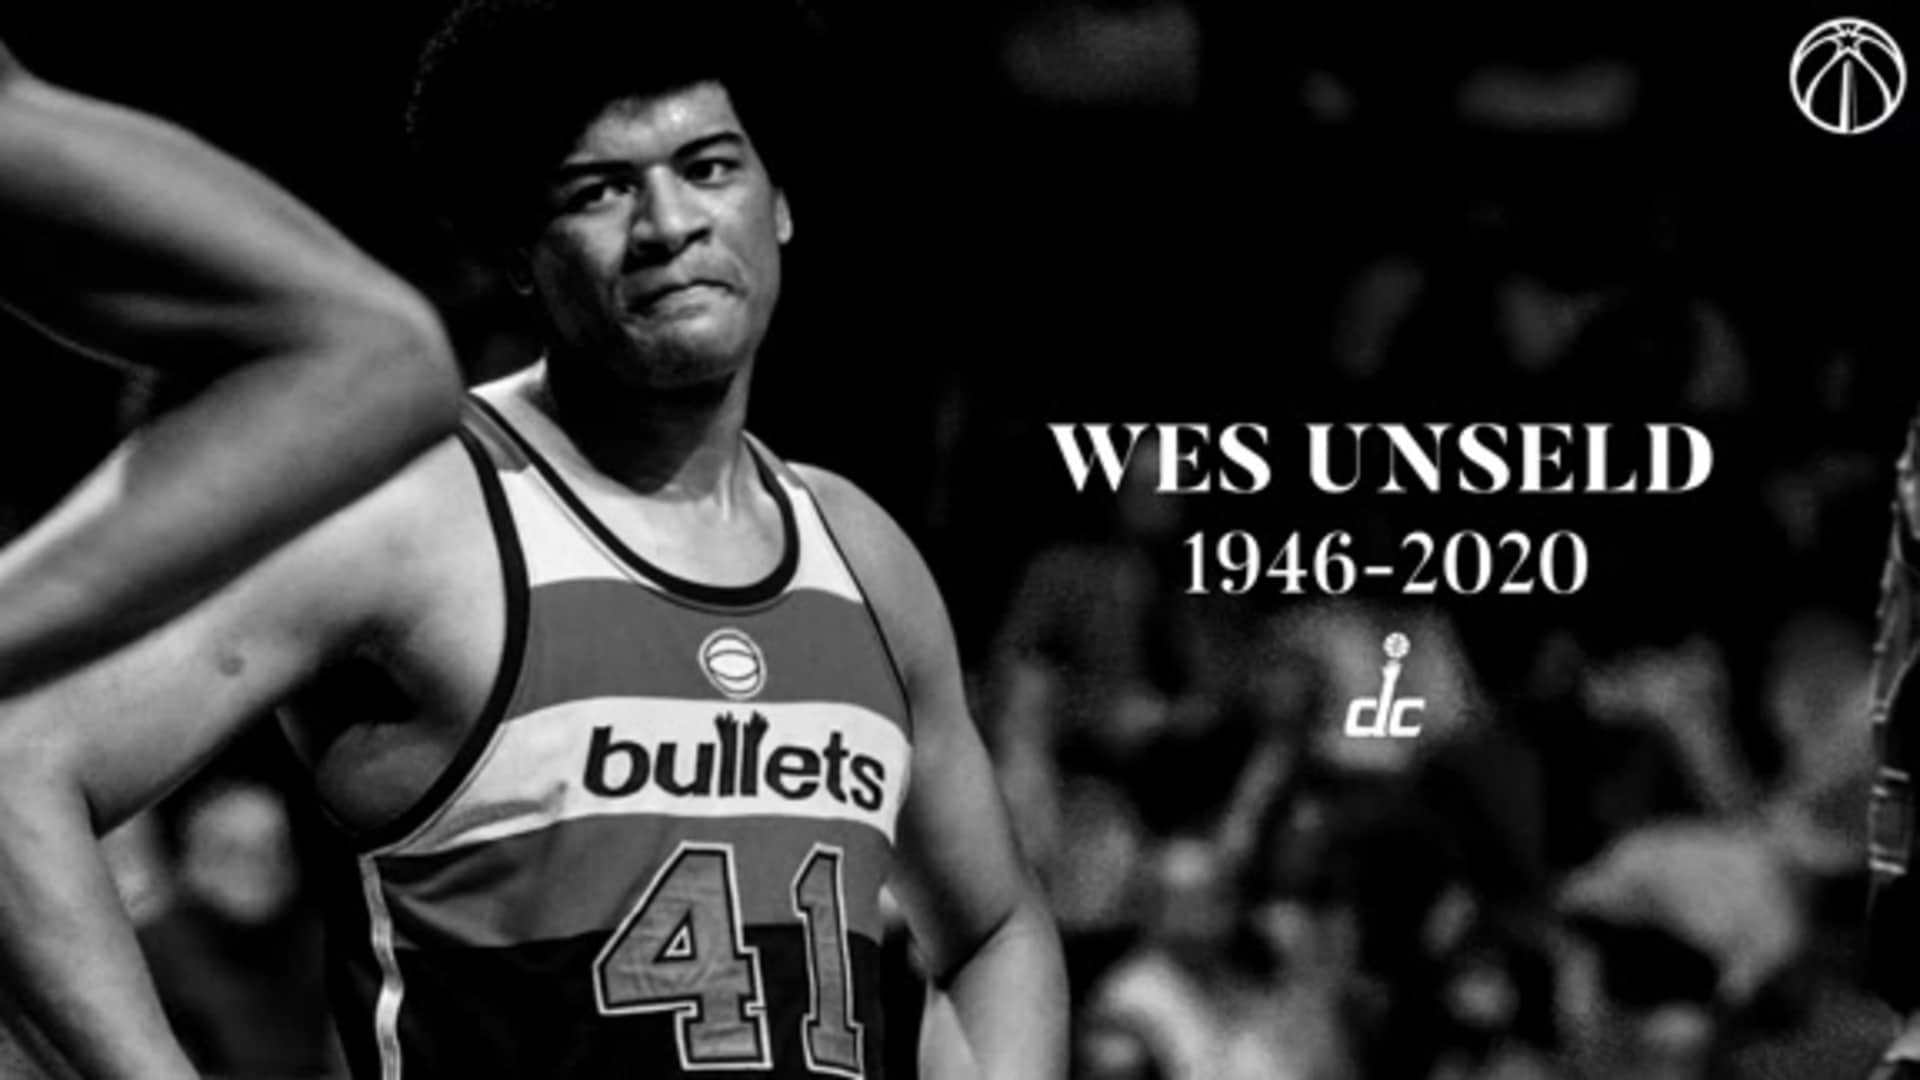 Interview with Wes Unseld Jr. in Orlando - 7/28/20